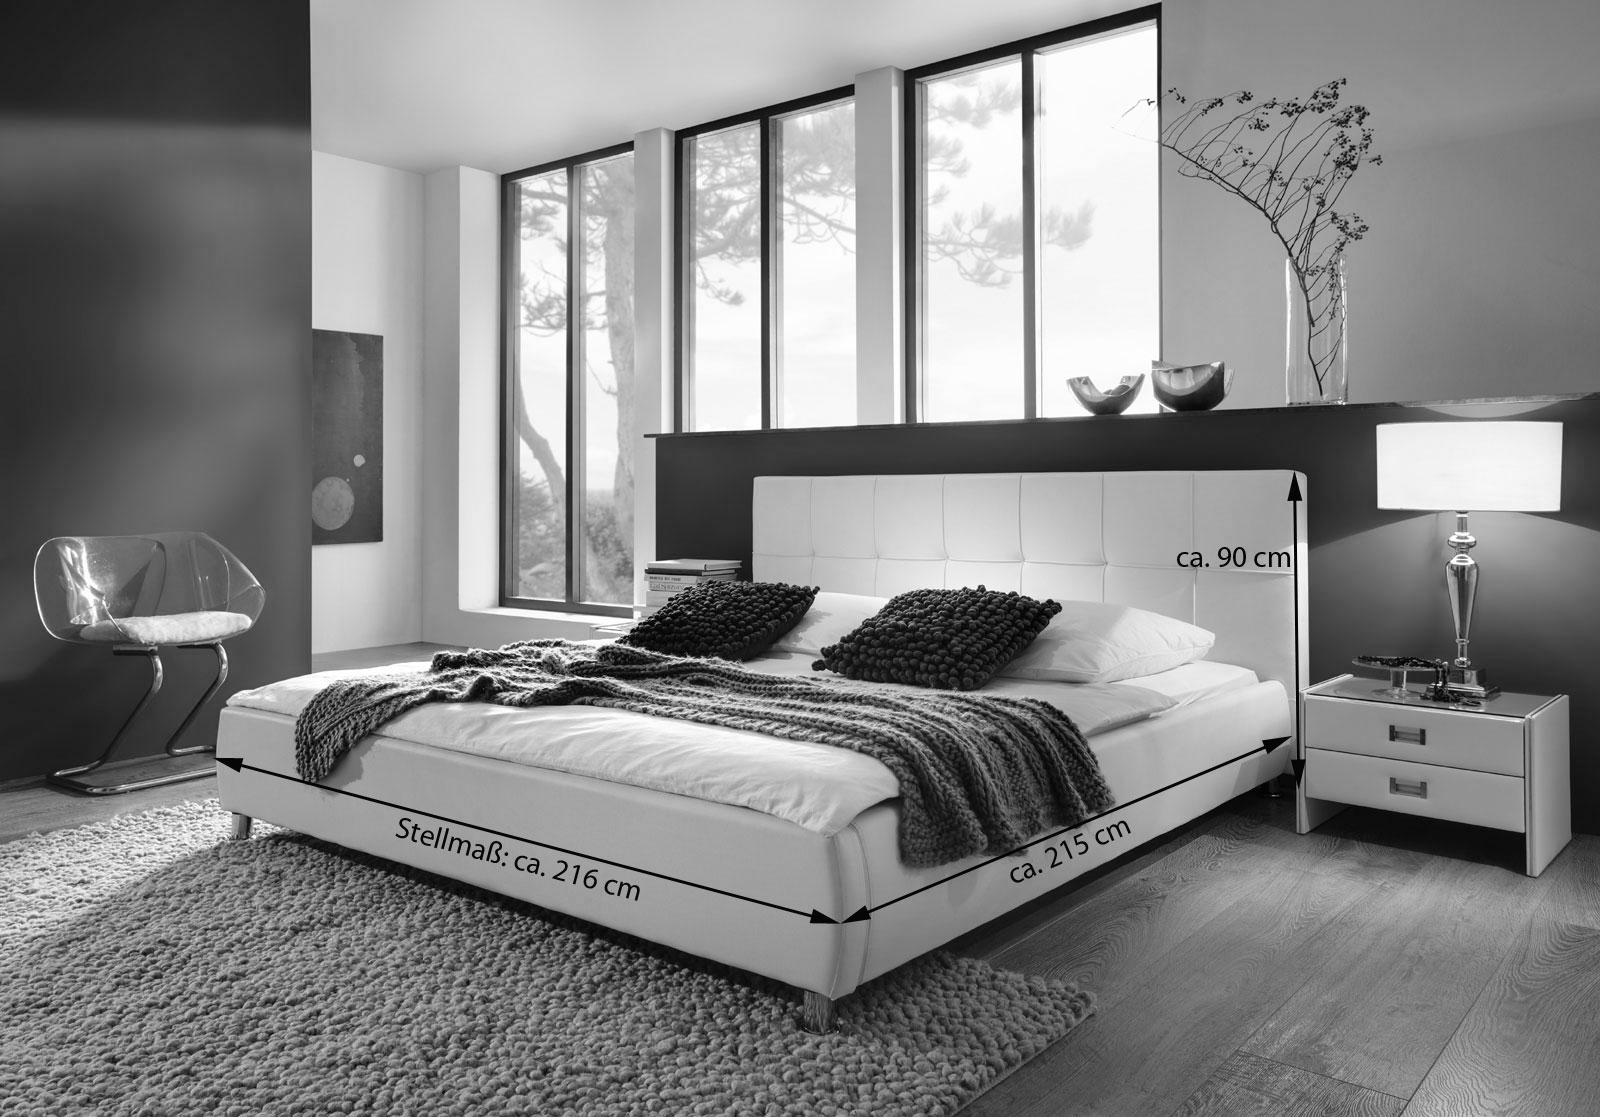 sam polsterbett 200x200 cm in wei bettgestell g nstig zarah demn chst. Black Bedroom Furniture Sets. Home Design Ideas